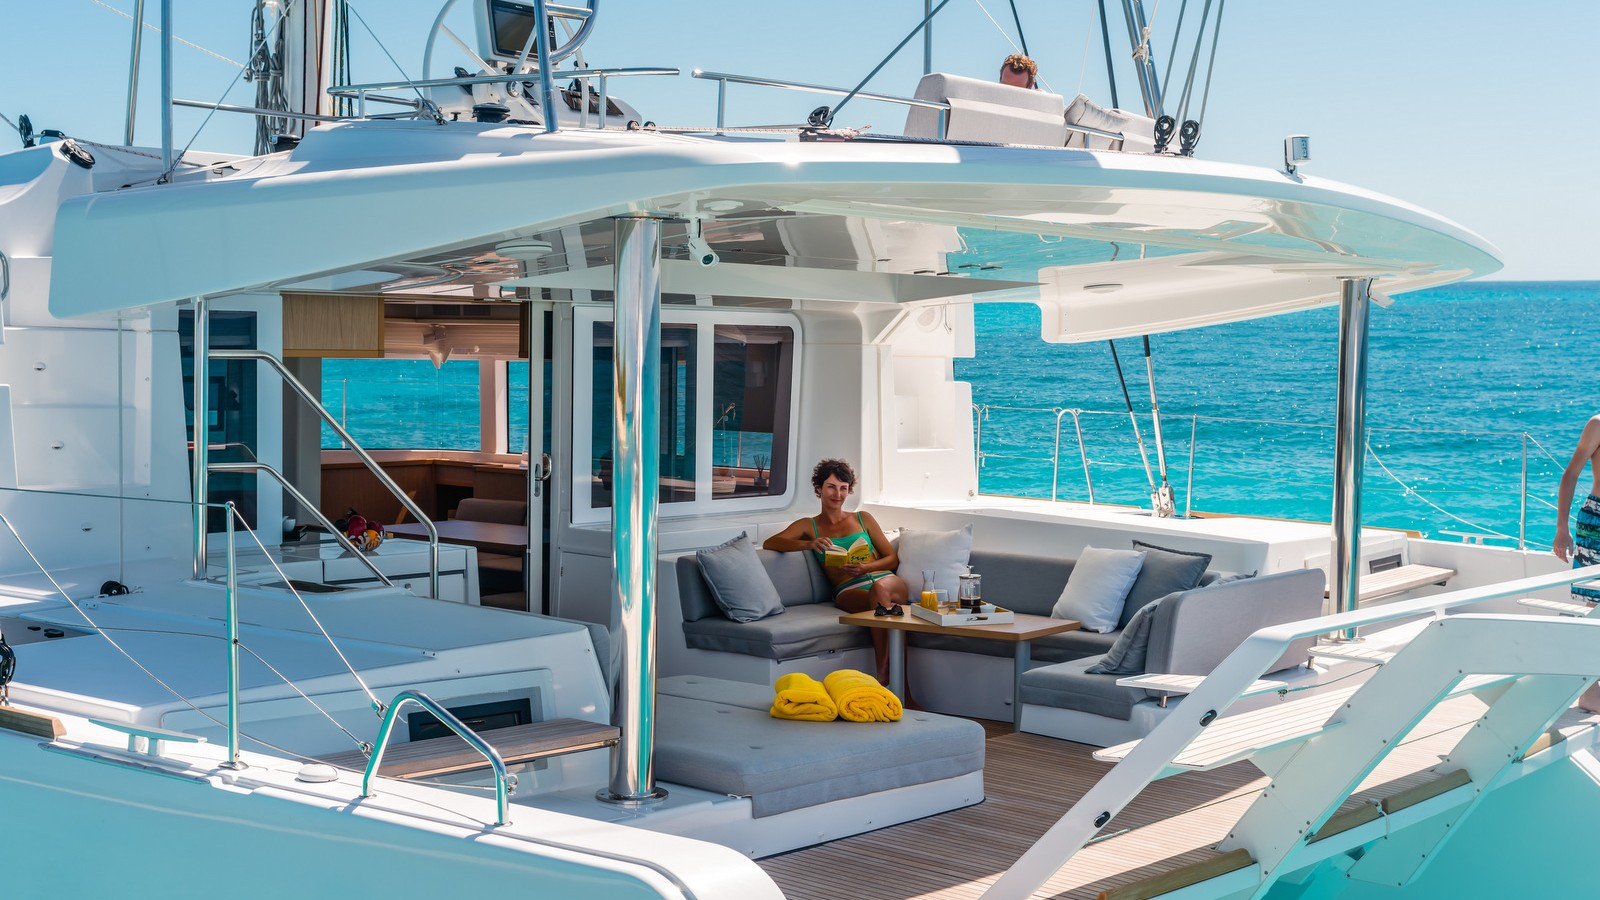 Catamaran 52 Ft Luxurious Yachts For Sale Charter Service